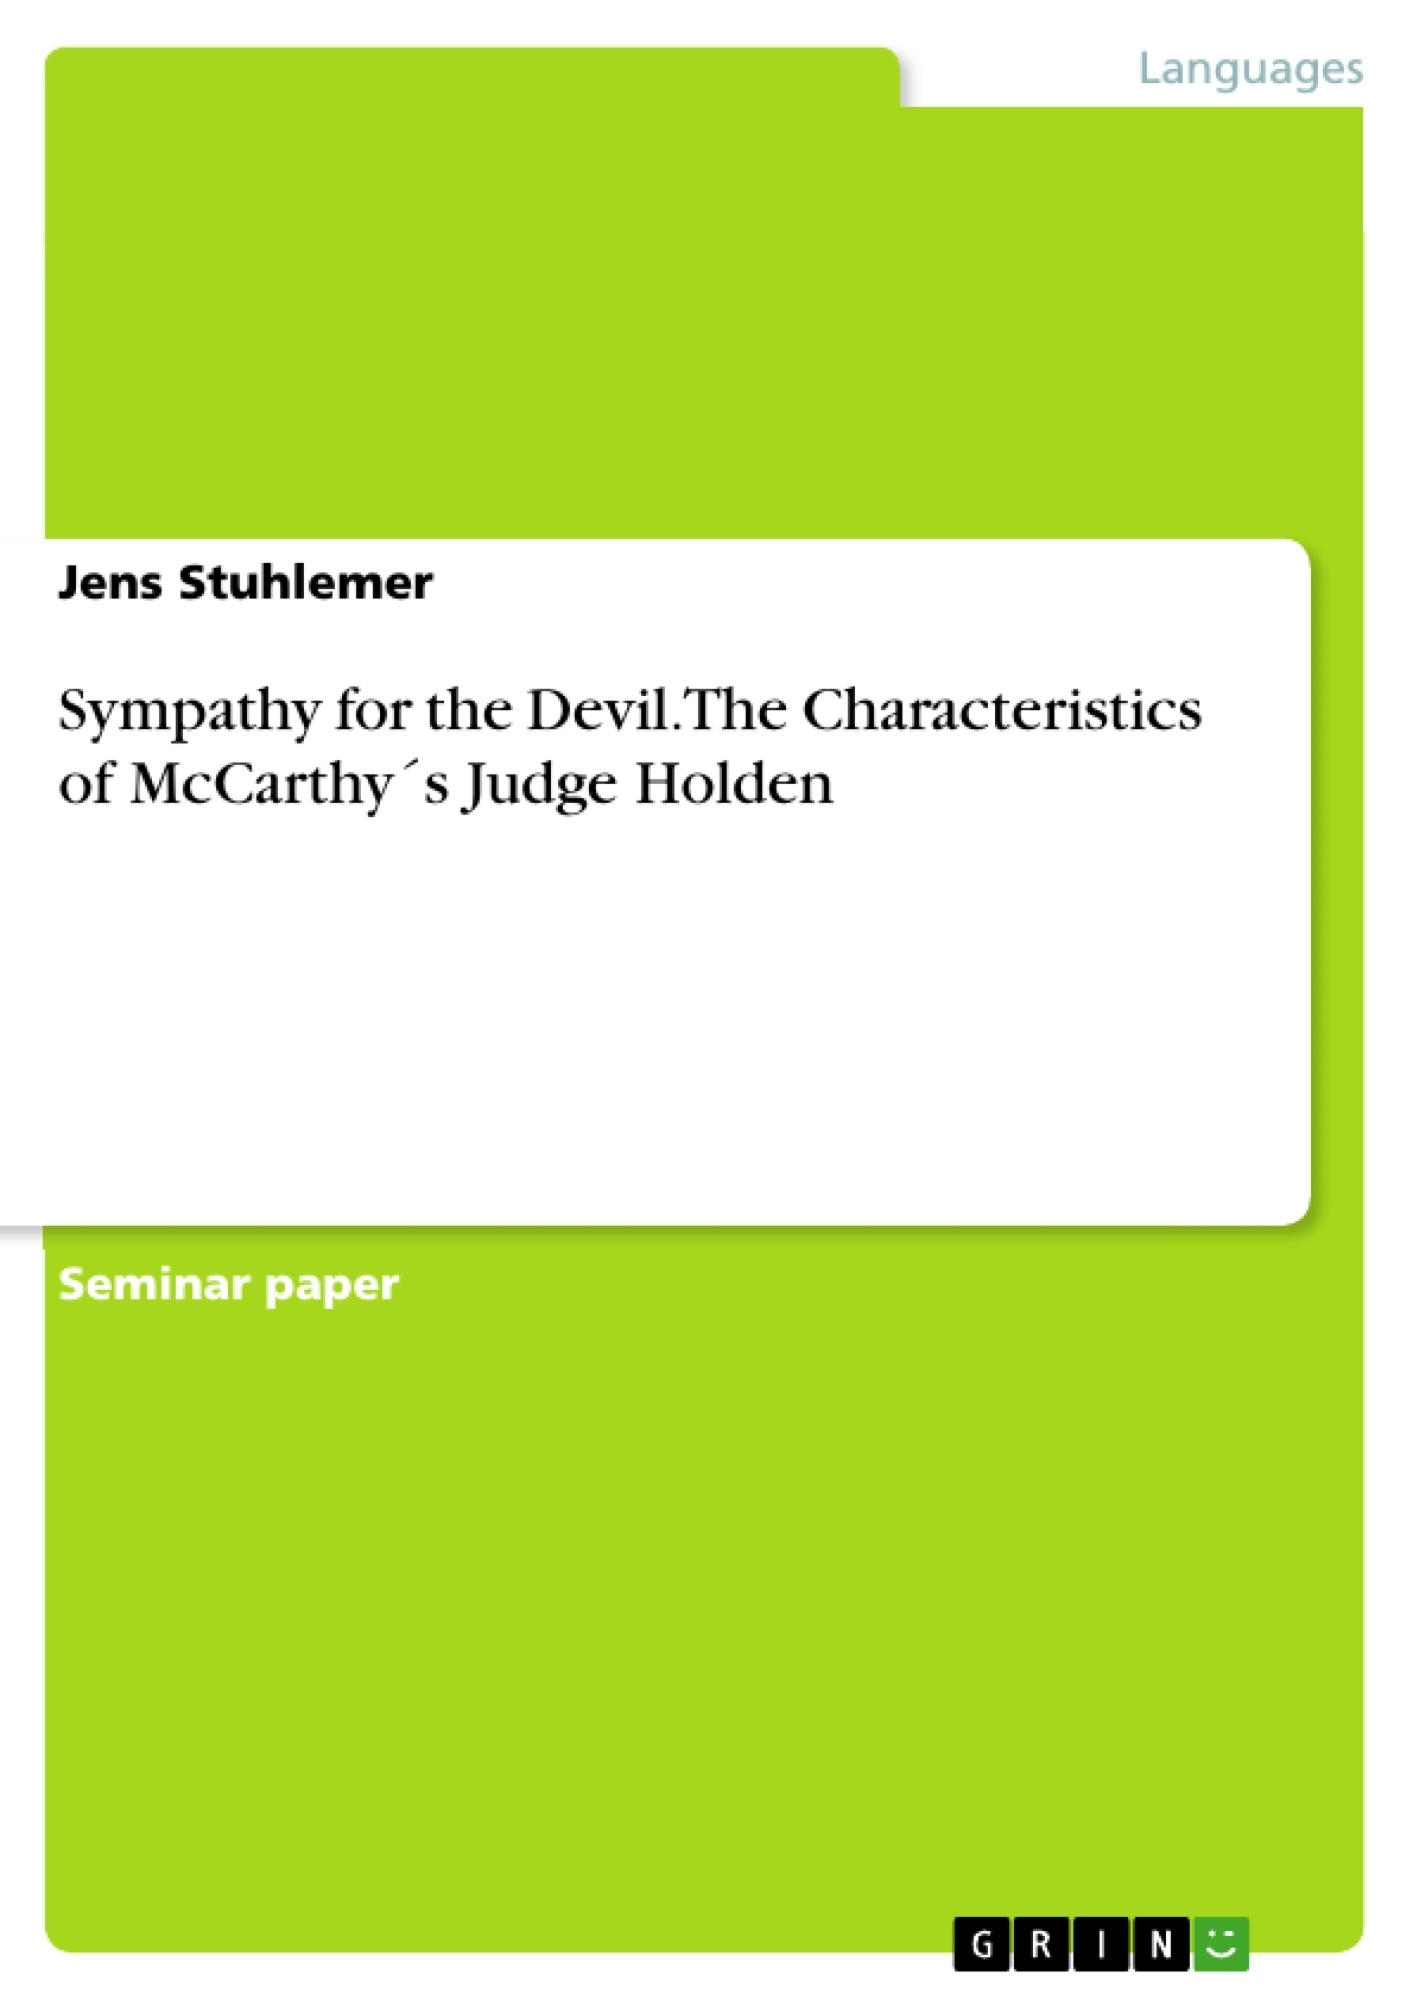 Title: Sympathy for the Devil. The Characteristics of McCarthy´s Judge Holden